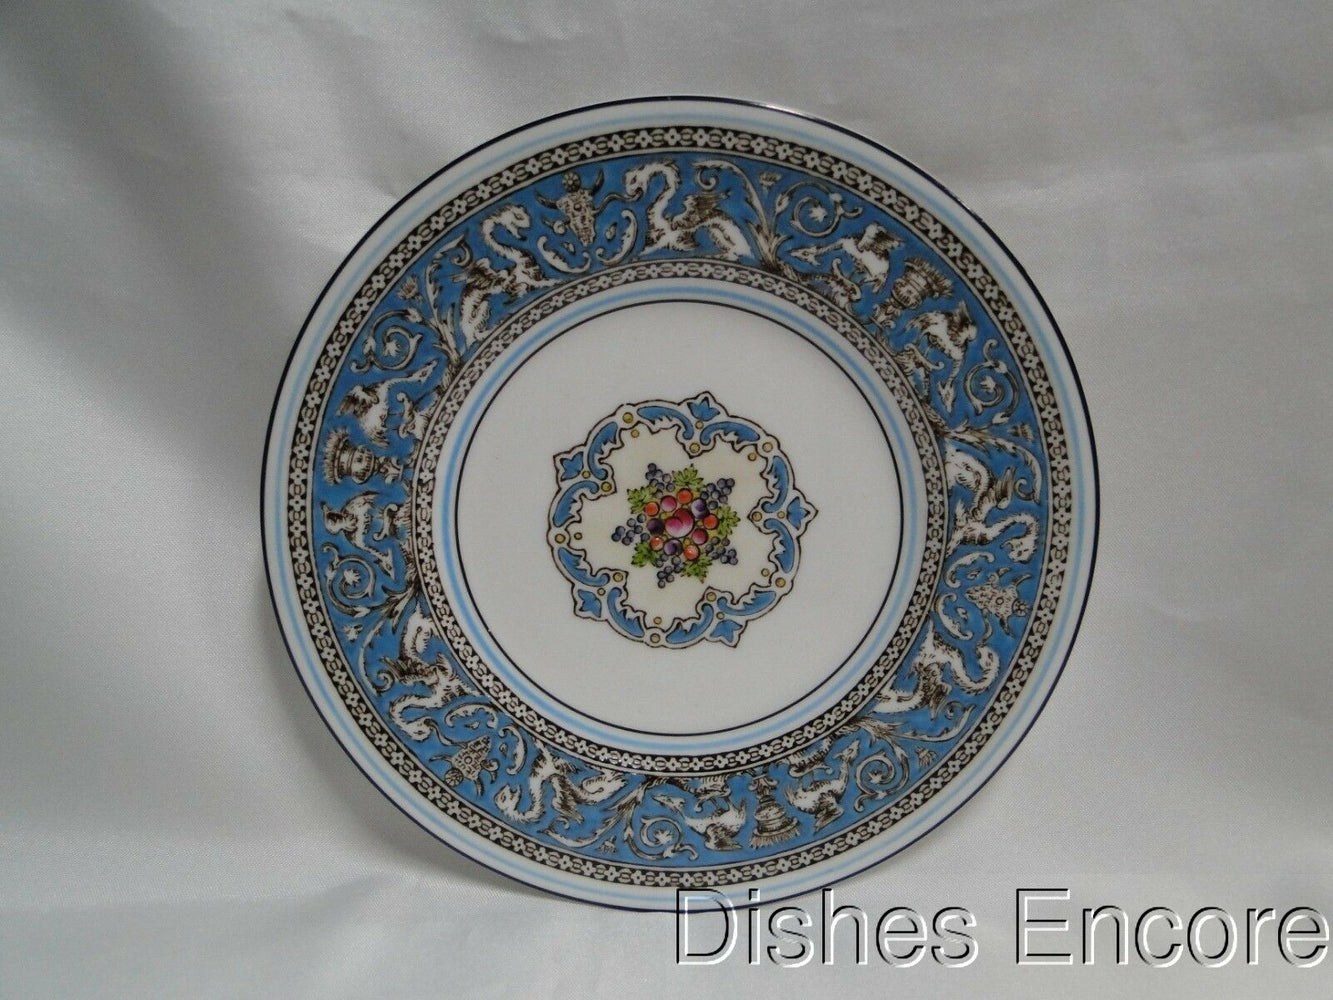 Wedgwood Florentine Turquoise, Fruit, Dragons: Dinner Plate (s), Black Gold Mark